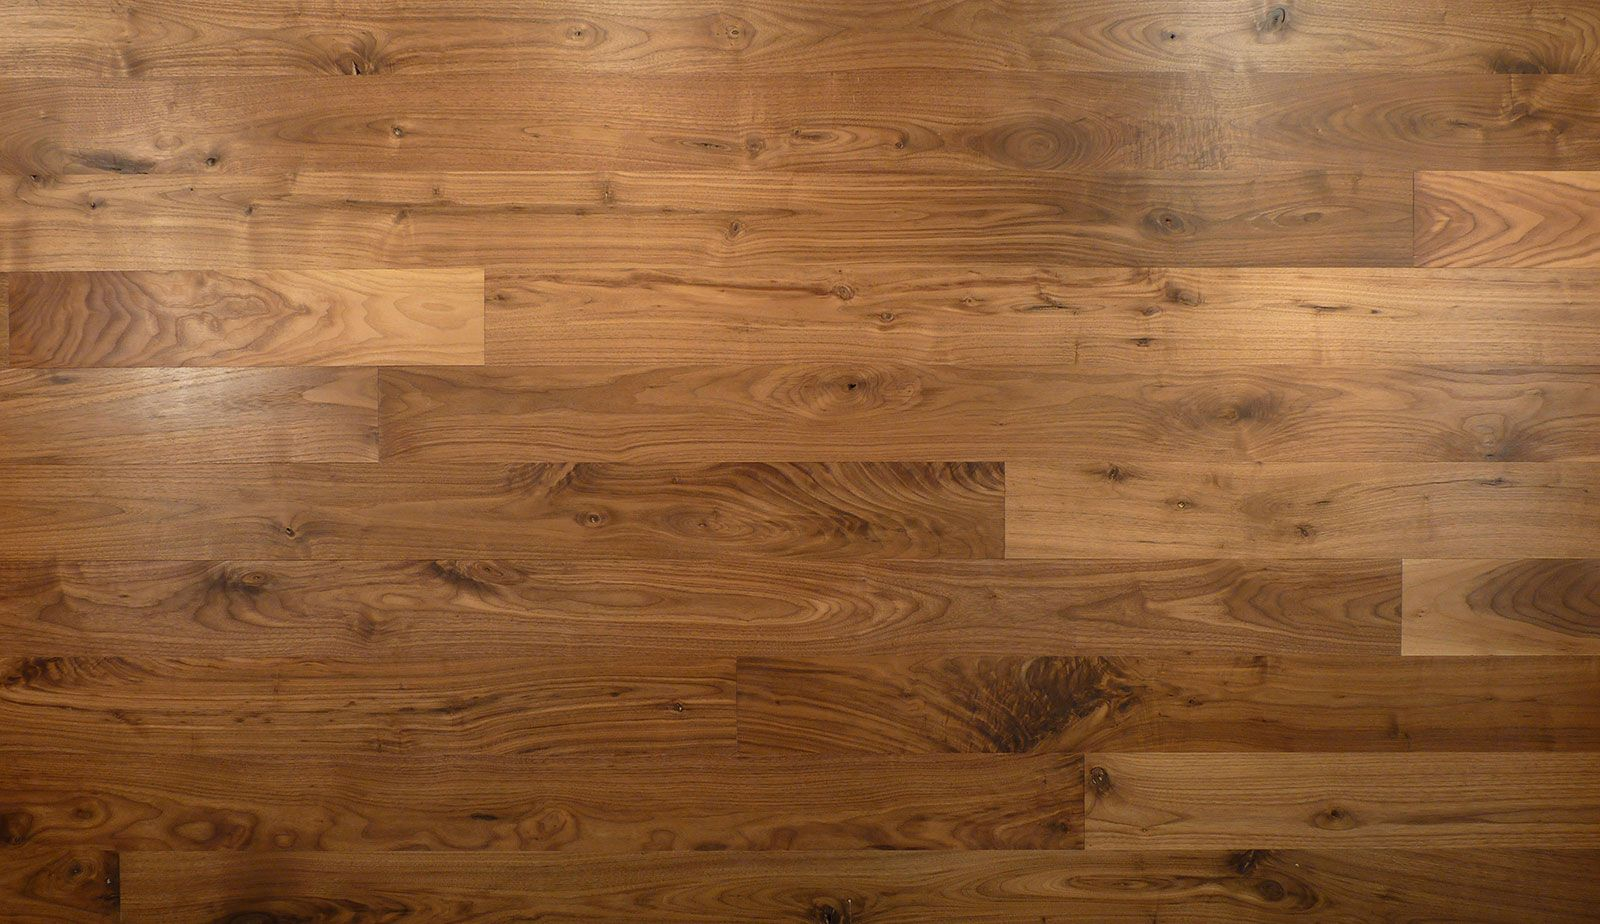 cherry wood floor texture. Cherry Wood Flooring Texture Wallpaper  Interiores Pinterest